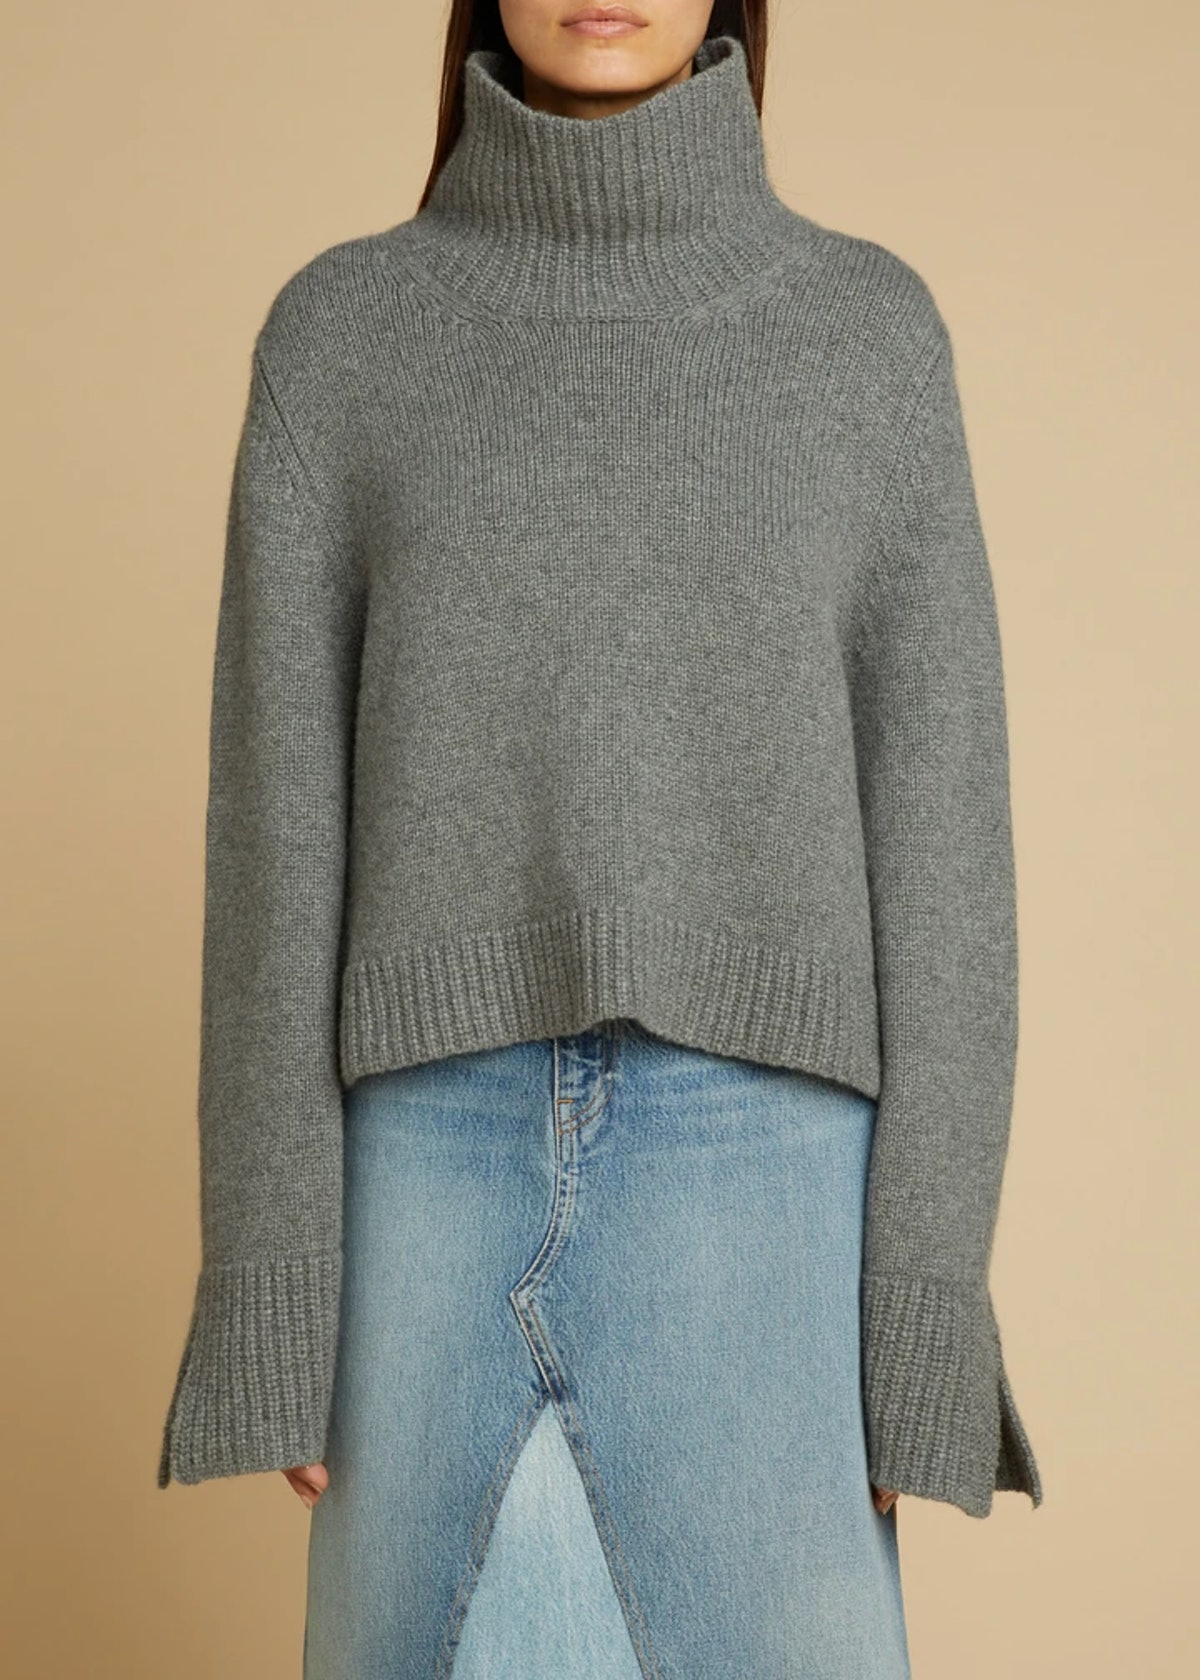 The Marion Sweater